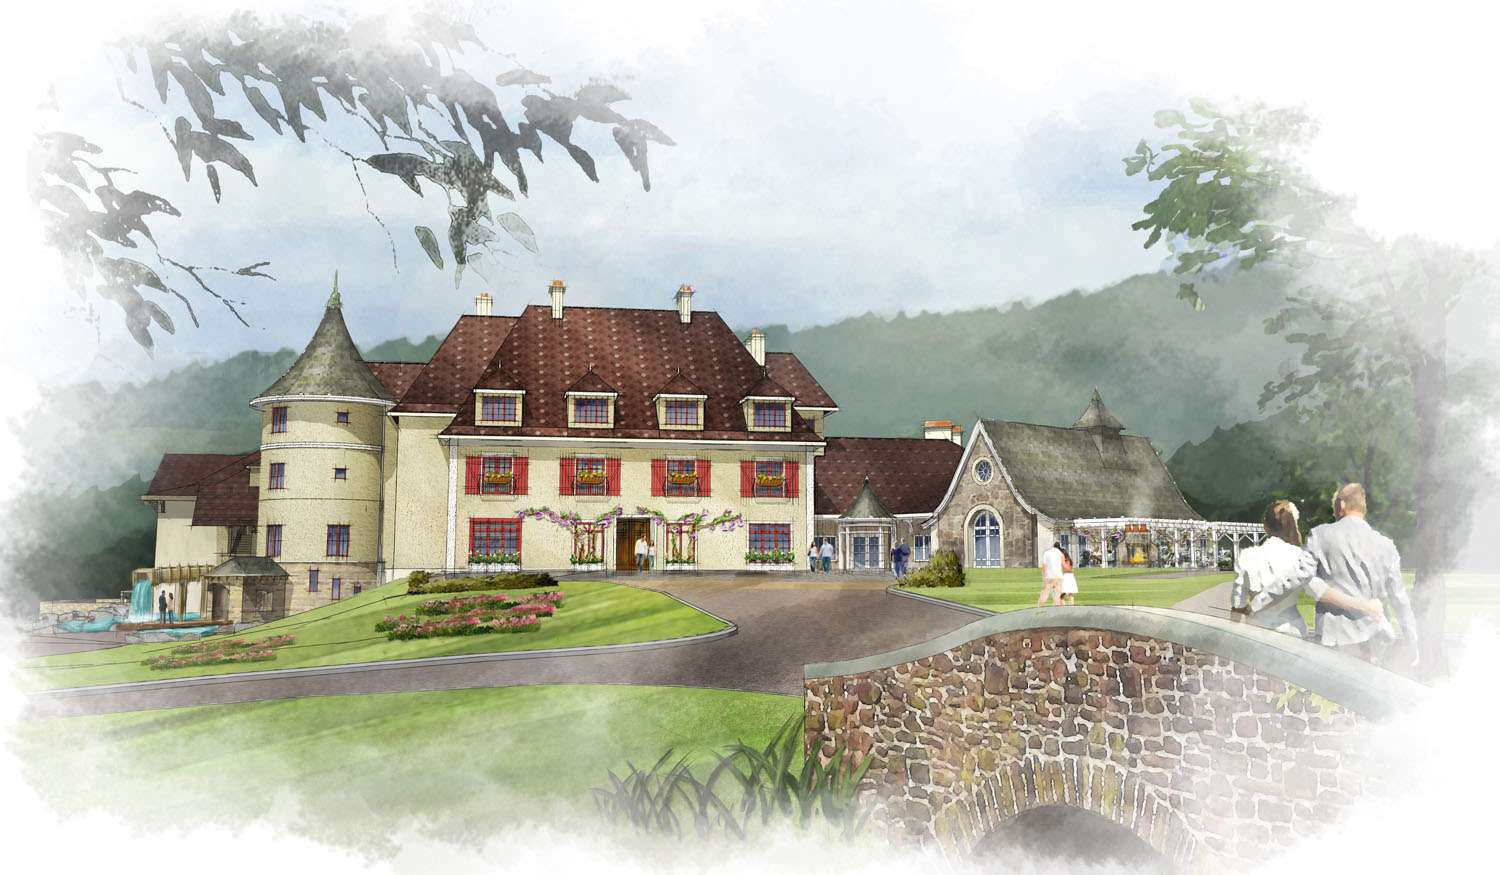 You'll feel as if you're staying at a private estate when you book accommodations at the new Mirbeau Inn & Spa in Plymouth